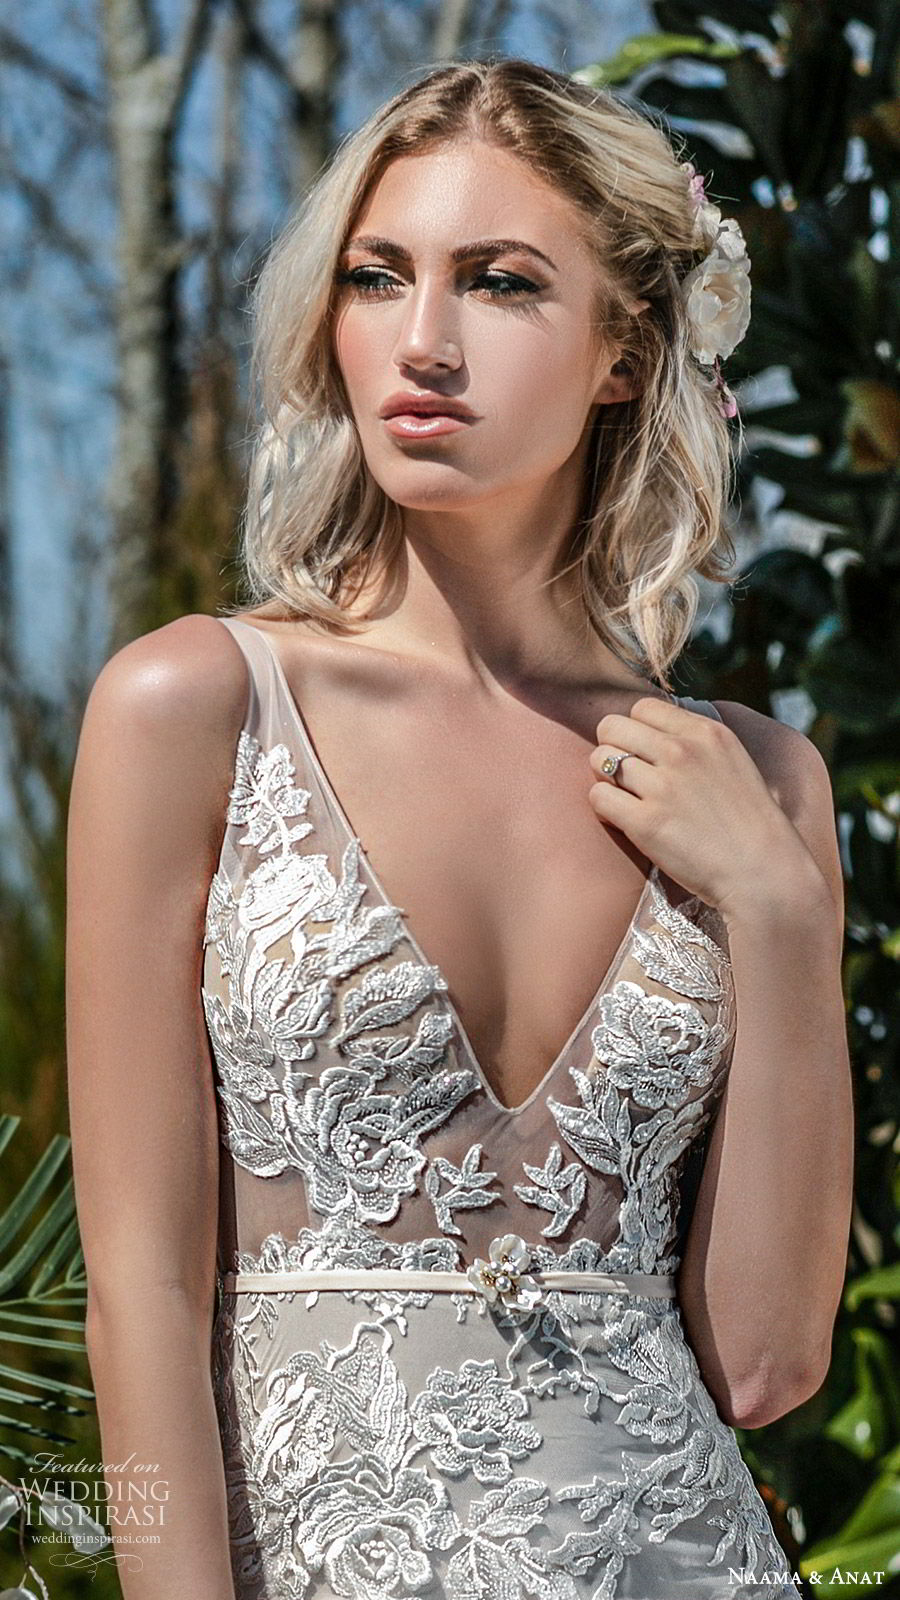 naama anat spring 2020 bridal sleeveless sheer straps deep v neckline illusion bodice fully embellished lace a line ball gown wedding dress (5) low back chapel train princess romantic zv